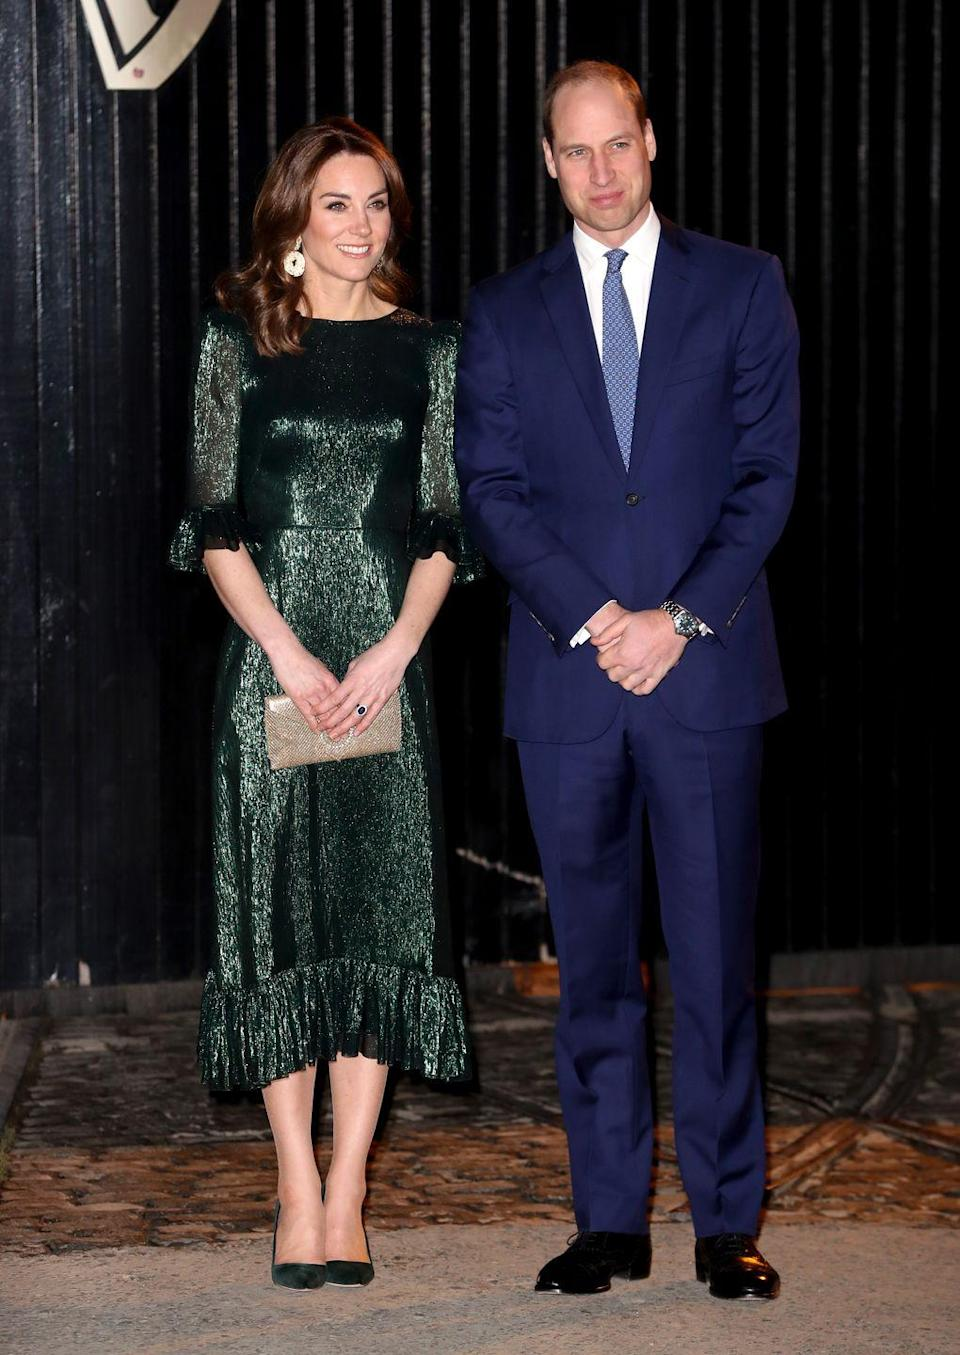 <p>The duchess stepped out in emerald ensemble by The Vampire's Wife while visiting the Guinness Storehouse with Prince William in Dublin, Ireland. </p>